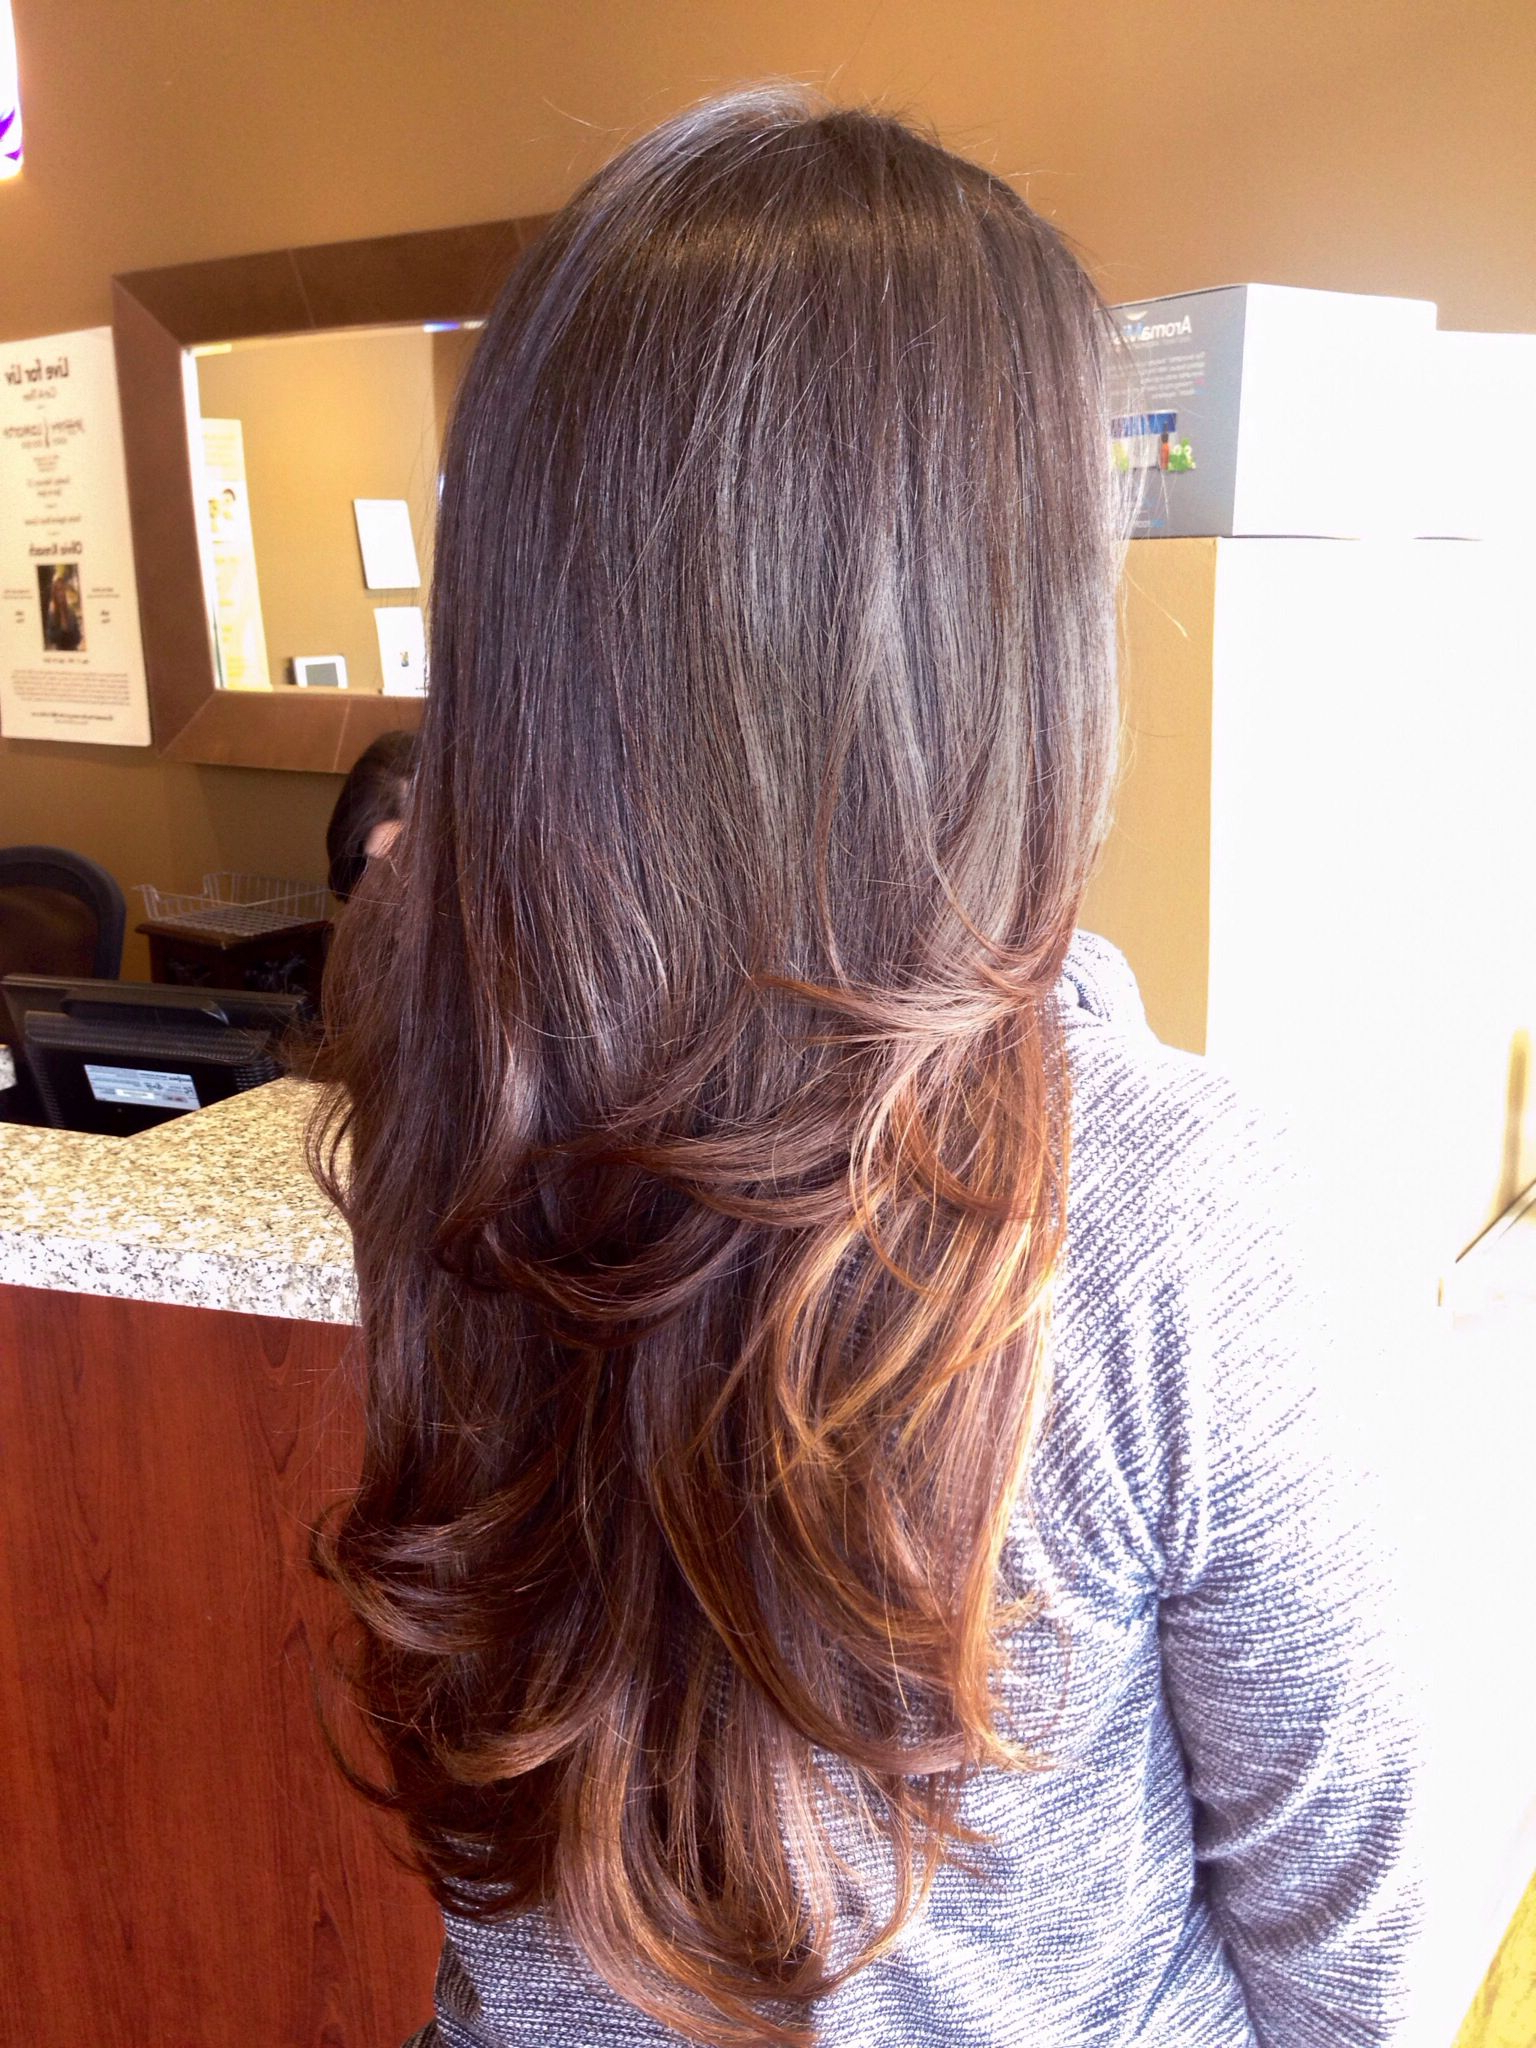 Flippy Bombshell Blowout With Medium Layers On Long Hair (Gallery 3 of 20)